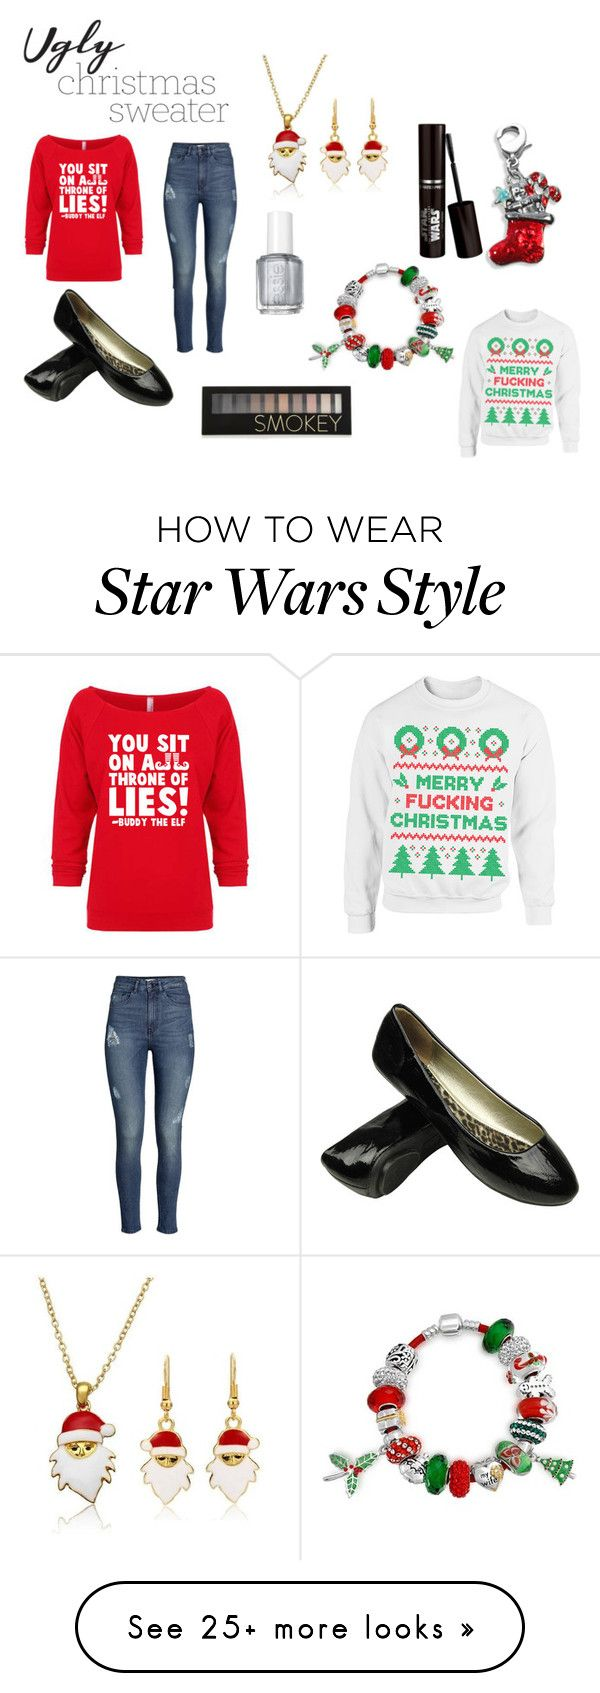 """""""Ugly Christmas Sweater Contest"""" by kayla-seely on Polyvore featuring H&M, Bling Jewelry, Essie, Forever 21, contest, contestentry and uglychristmassweater"""